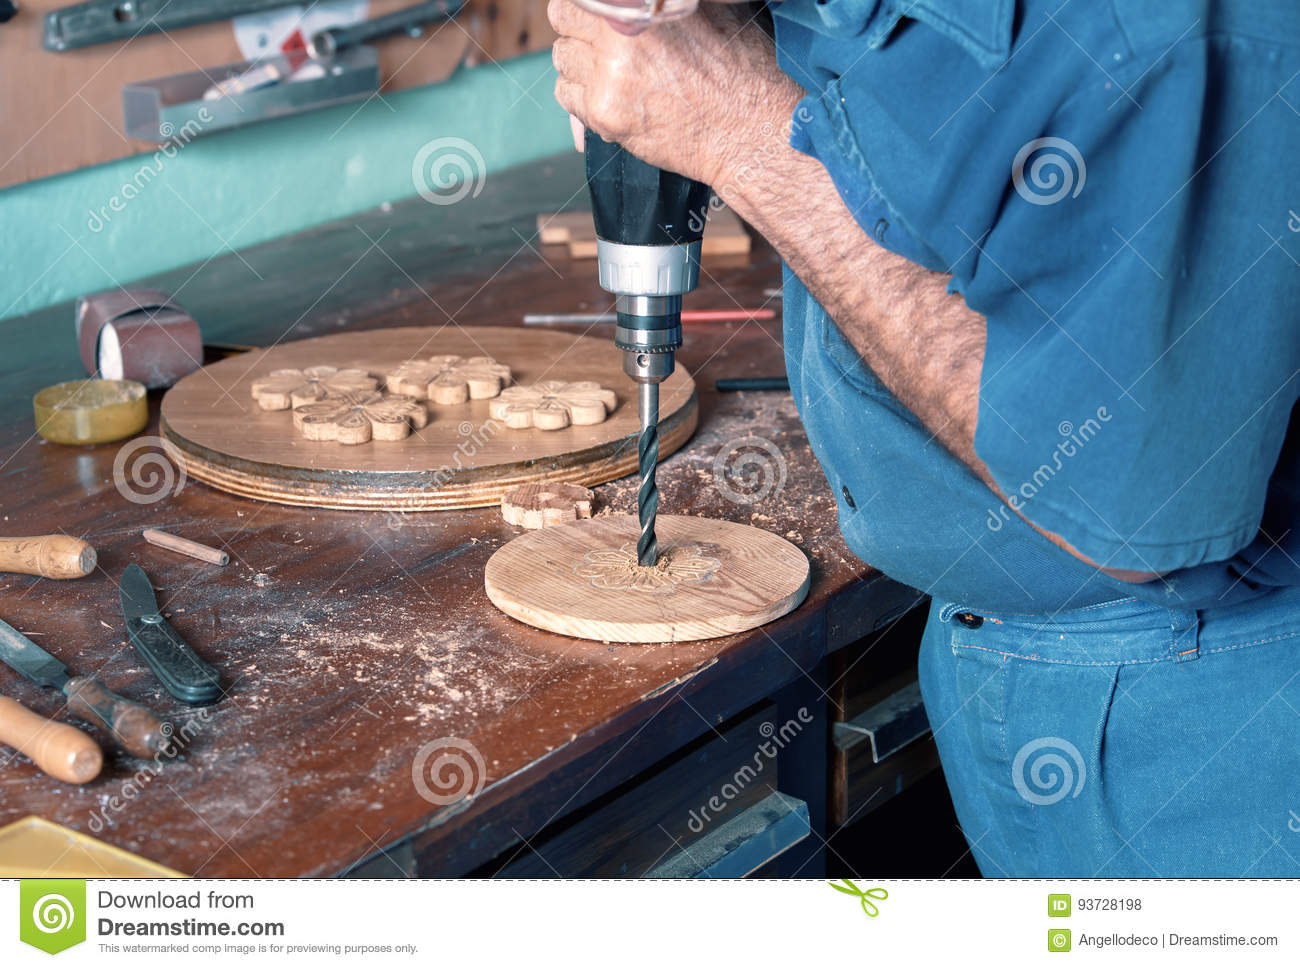 Astounding Cabinet Maker Drilling Wood With A Power Drill In Workbench Andrewgaddart Wooden Chair Designs For Living Room Andrewgaddartcom